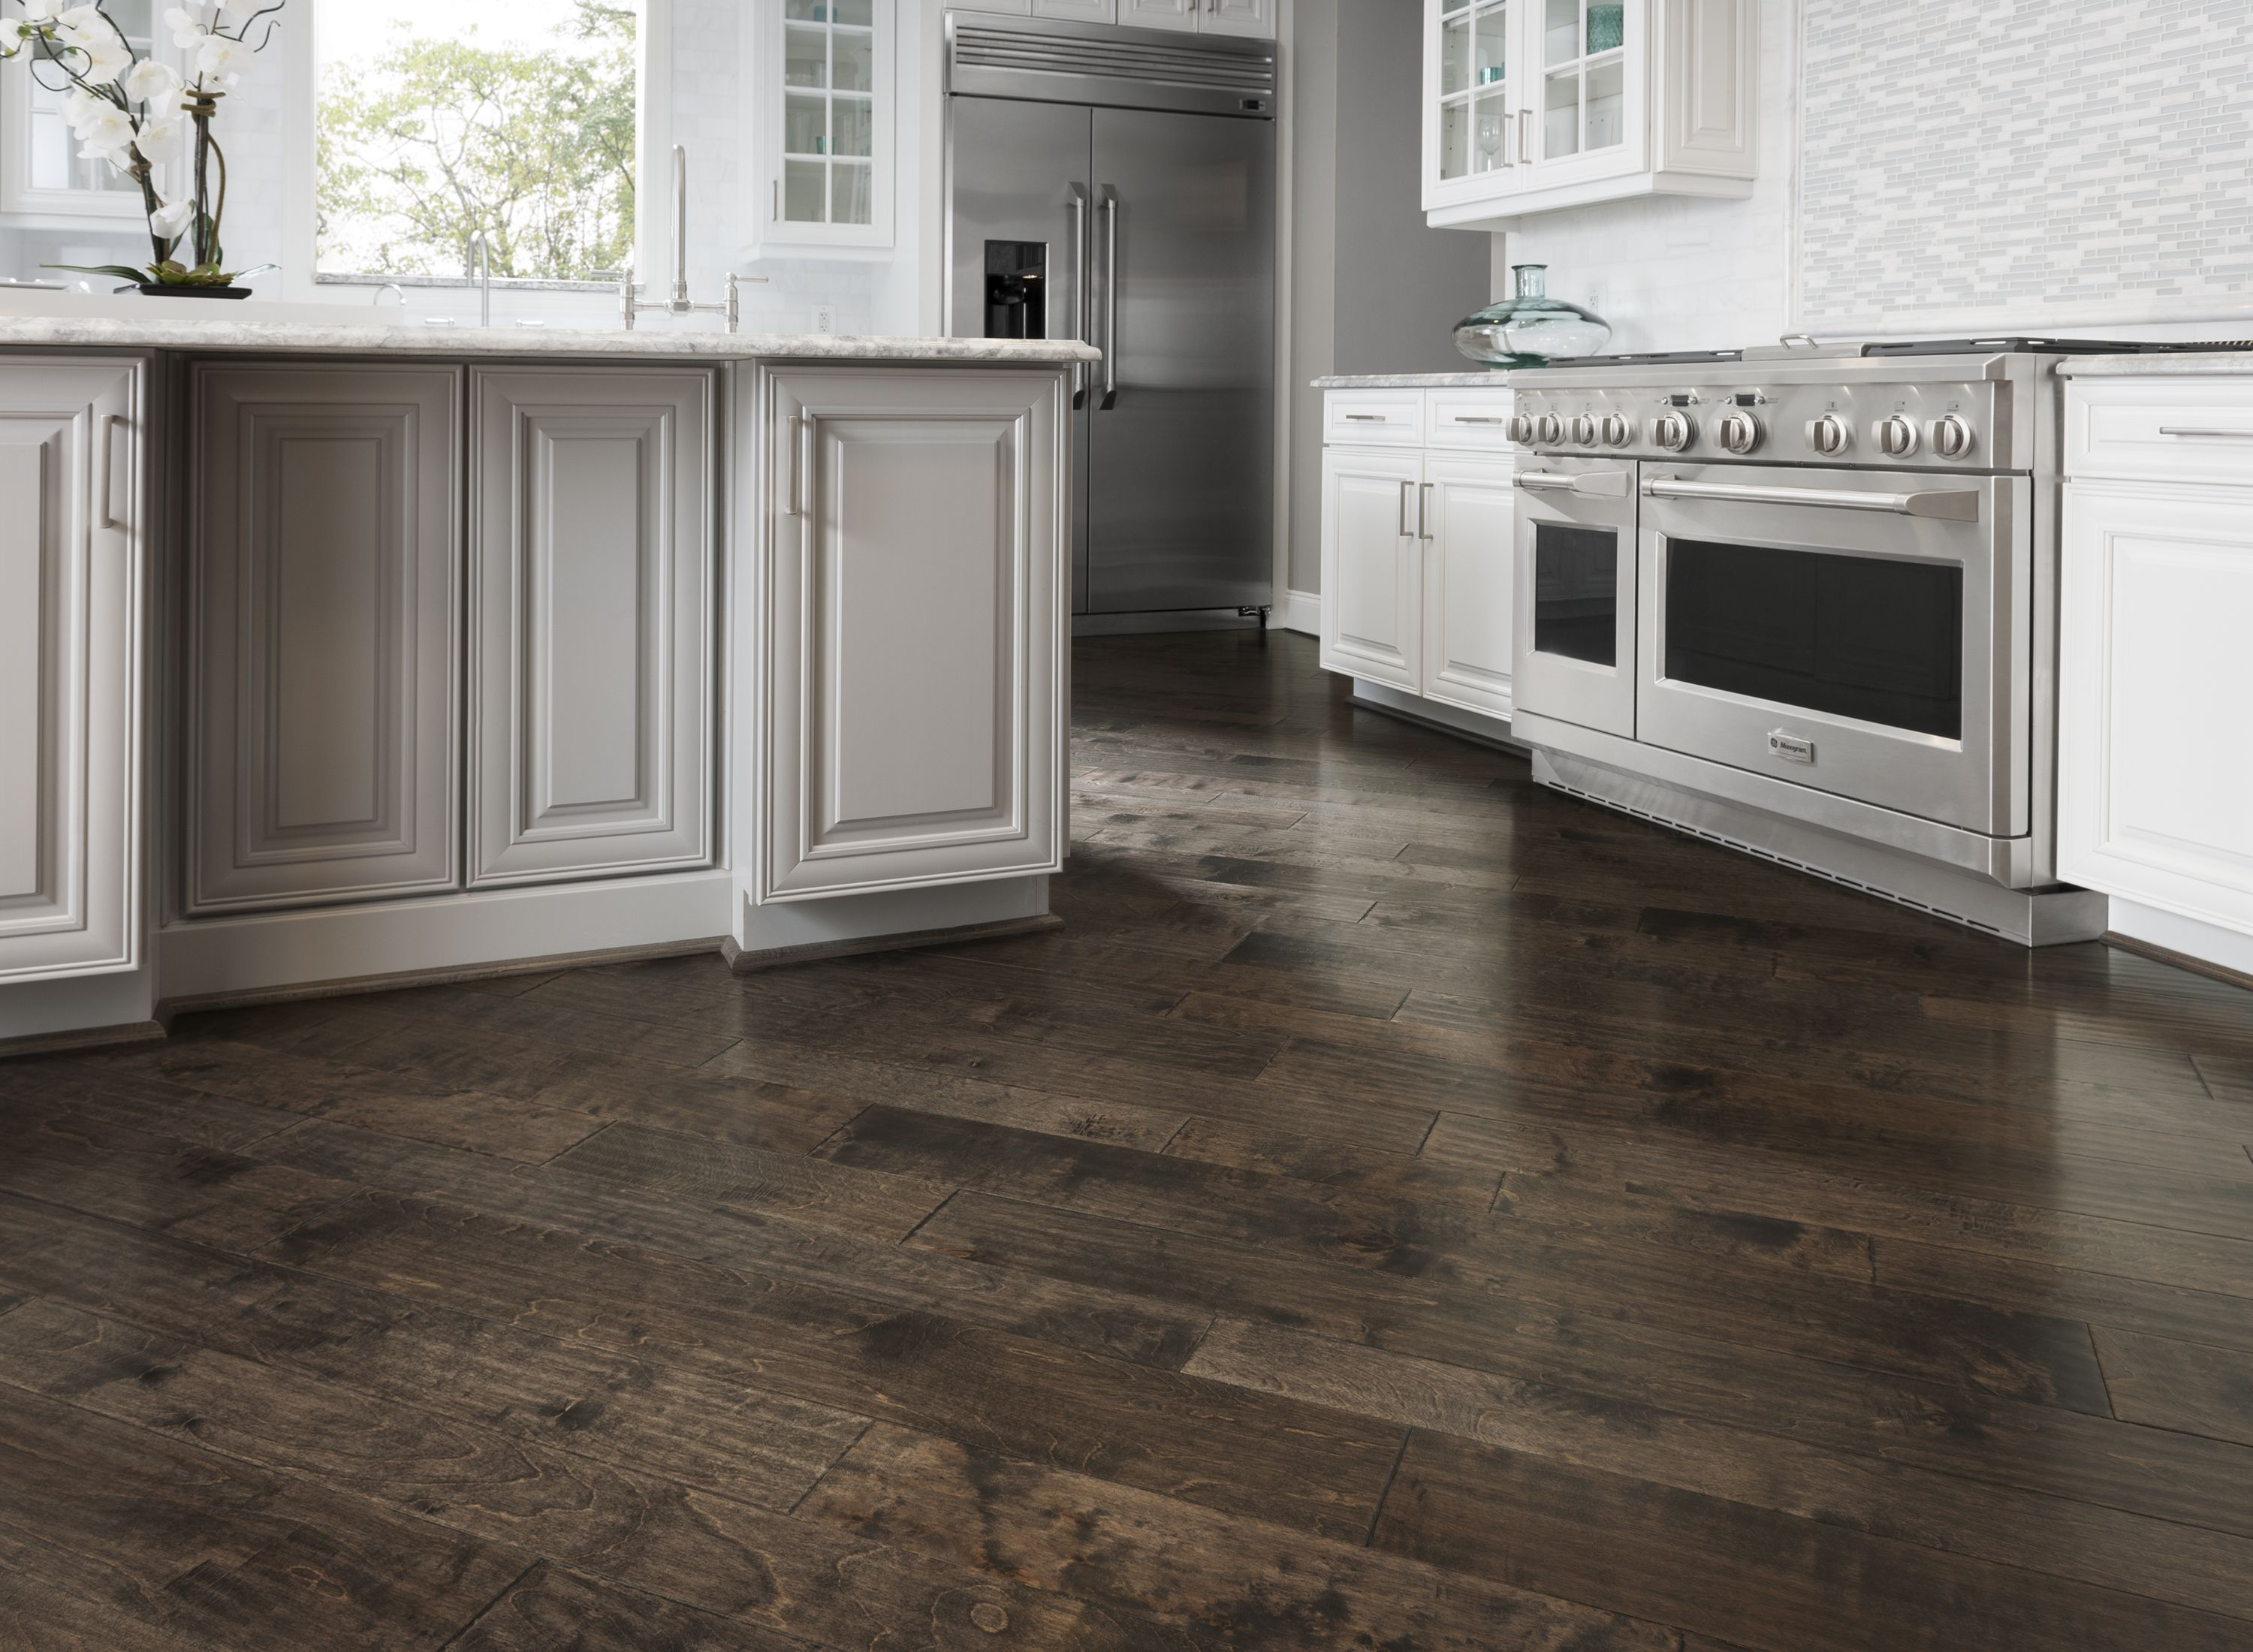 Also from Armstrong's wood flooring collection - Artesian Hand-Tooled - is  this birch hardwood